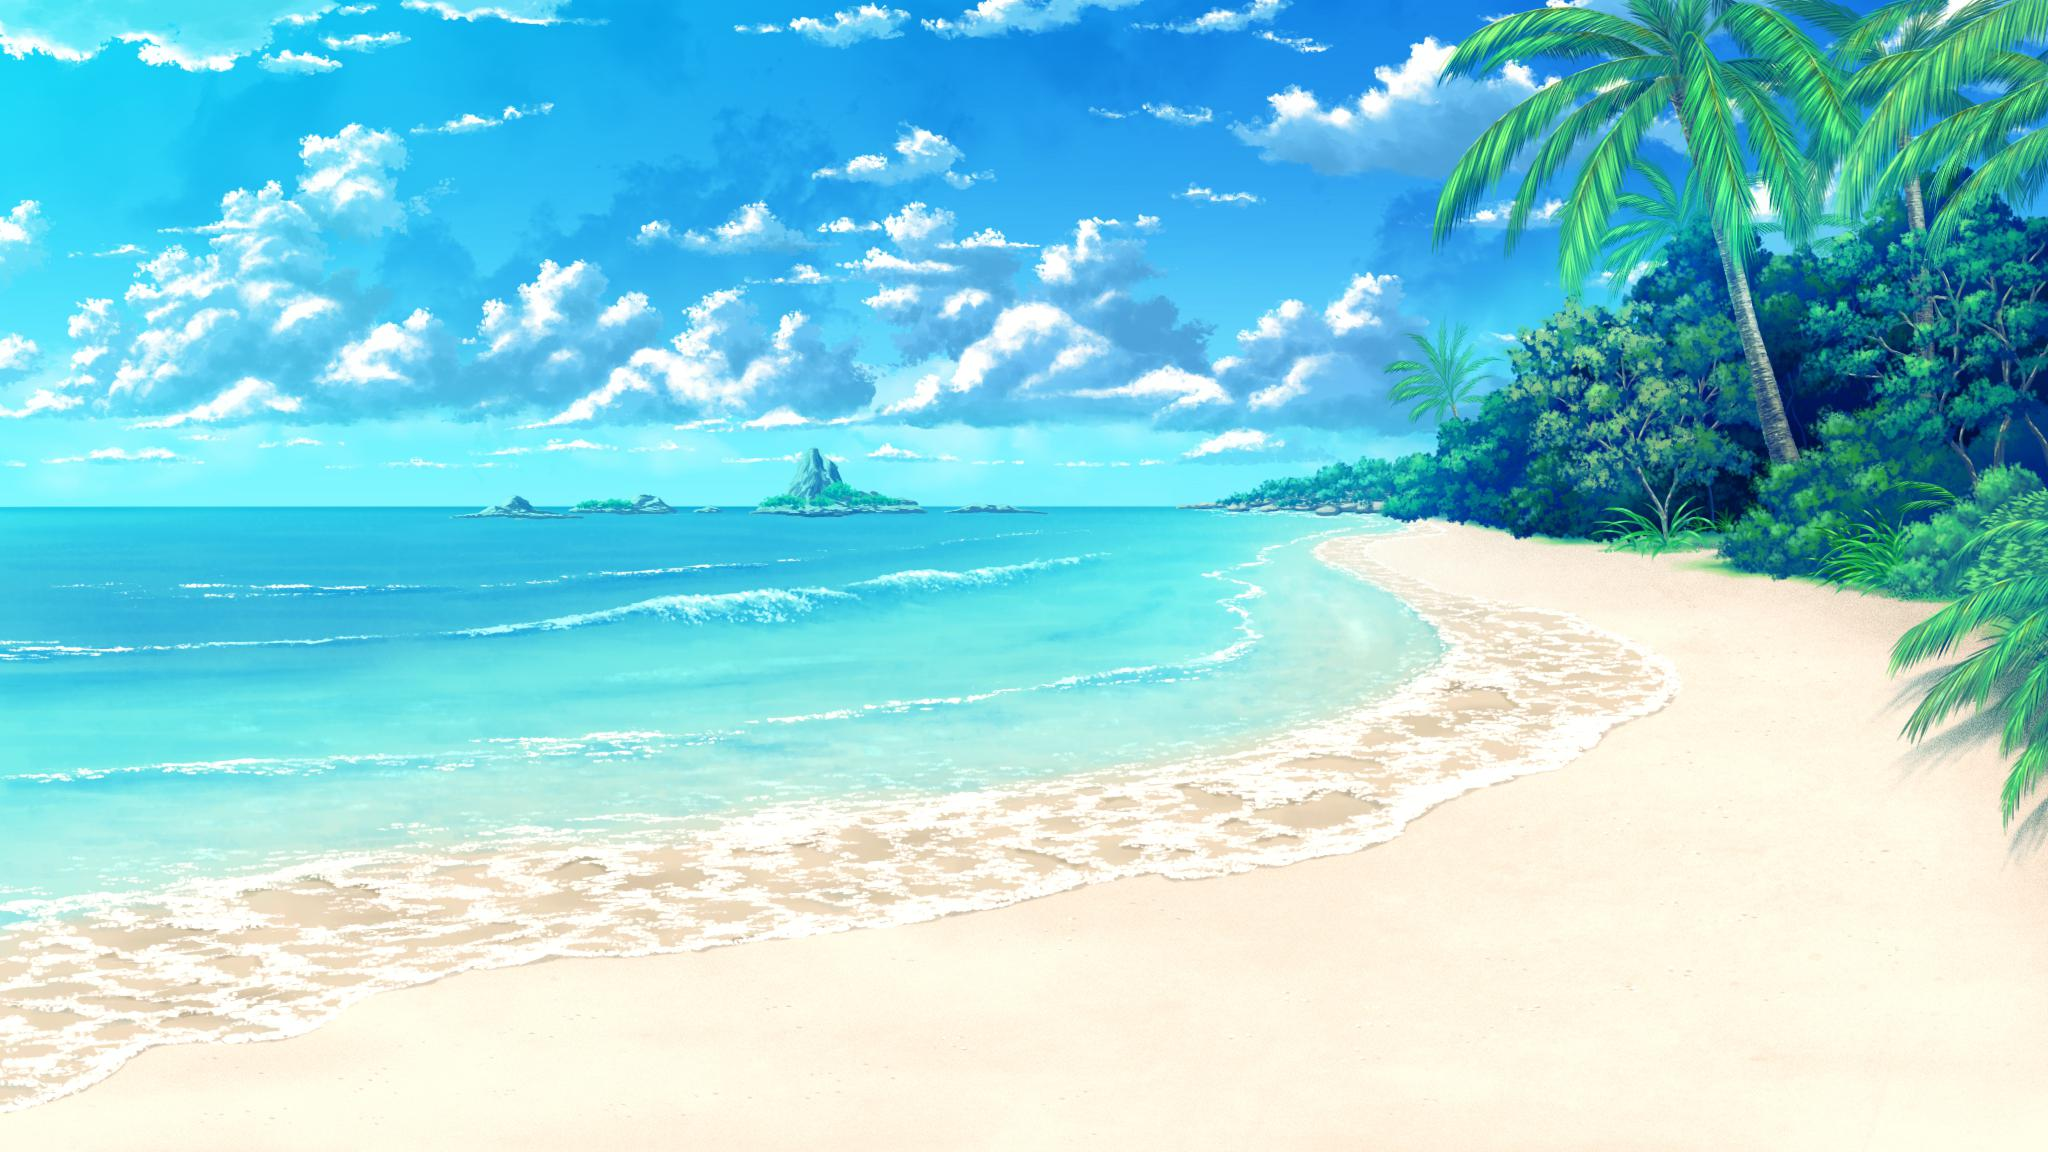 Beach Backgrounds Wpawpartco